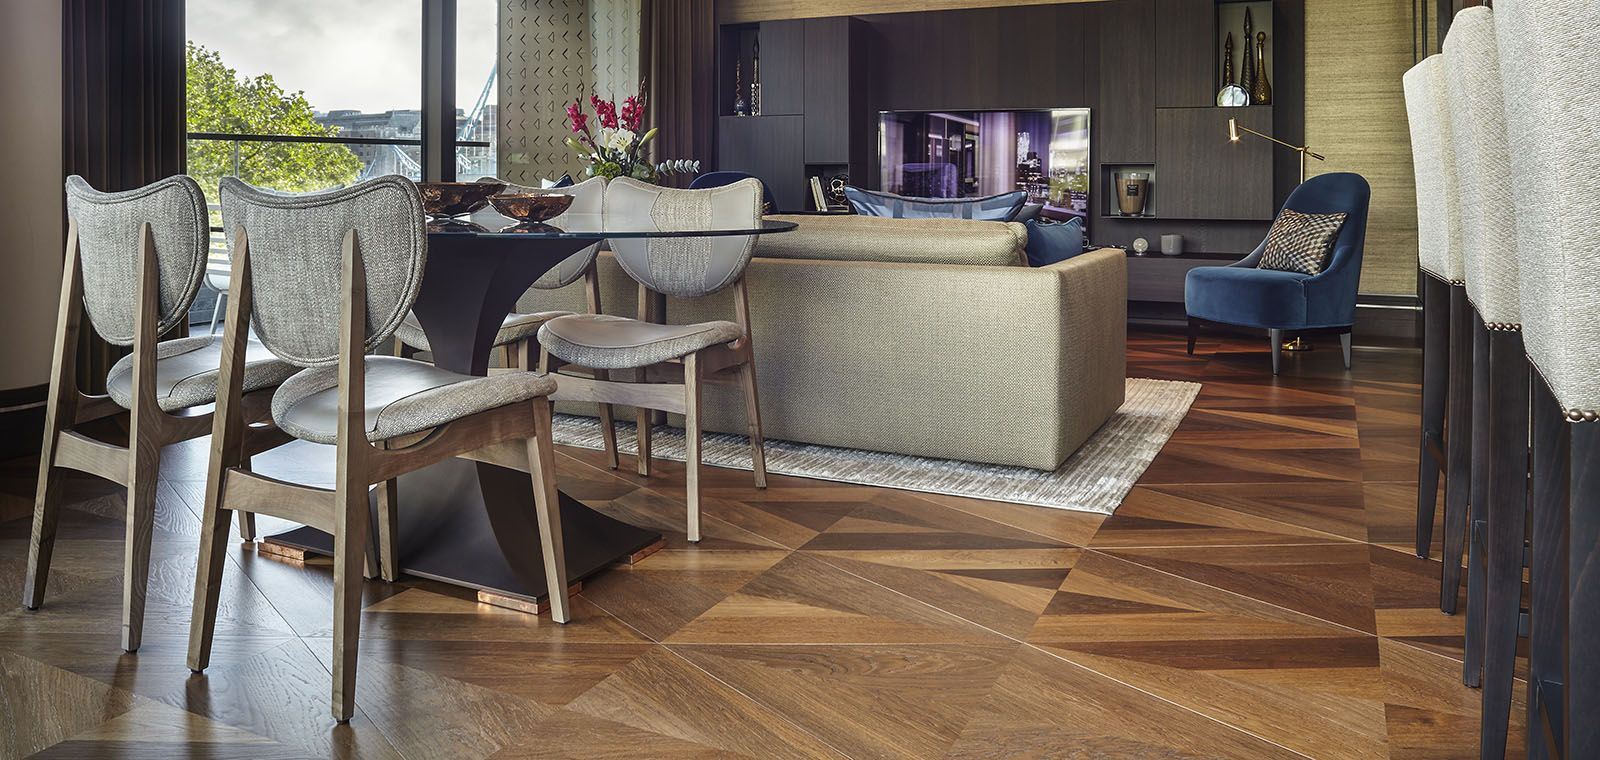 Wood Flooring Product Ranges Explained From Havwoods, The Wood Flooring  Experts. Learn About The Different Wood Flooring Ranges Havwoods Stock.